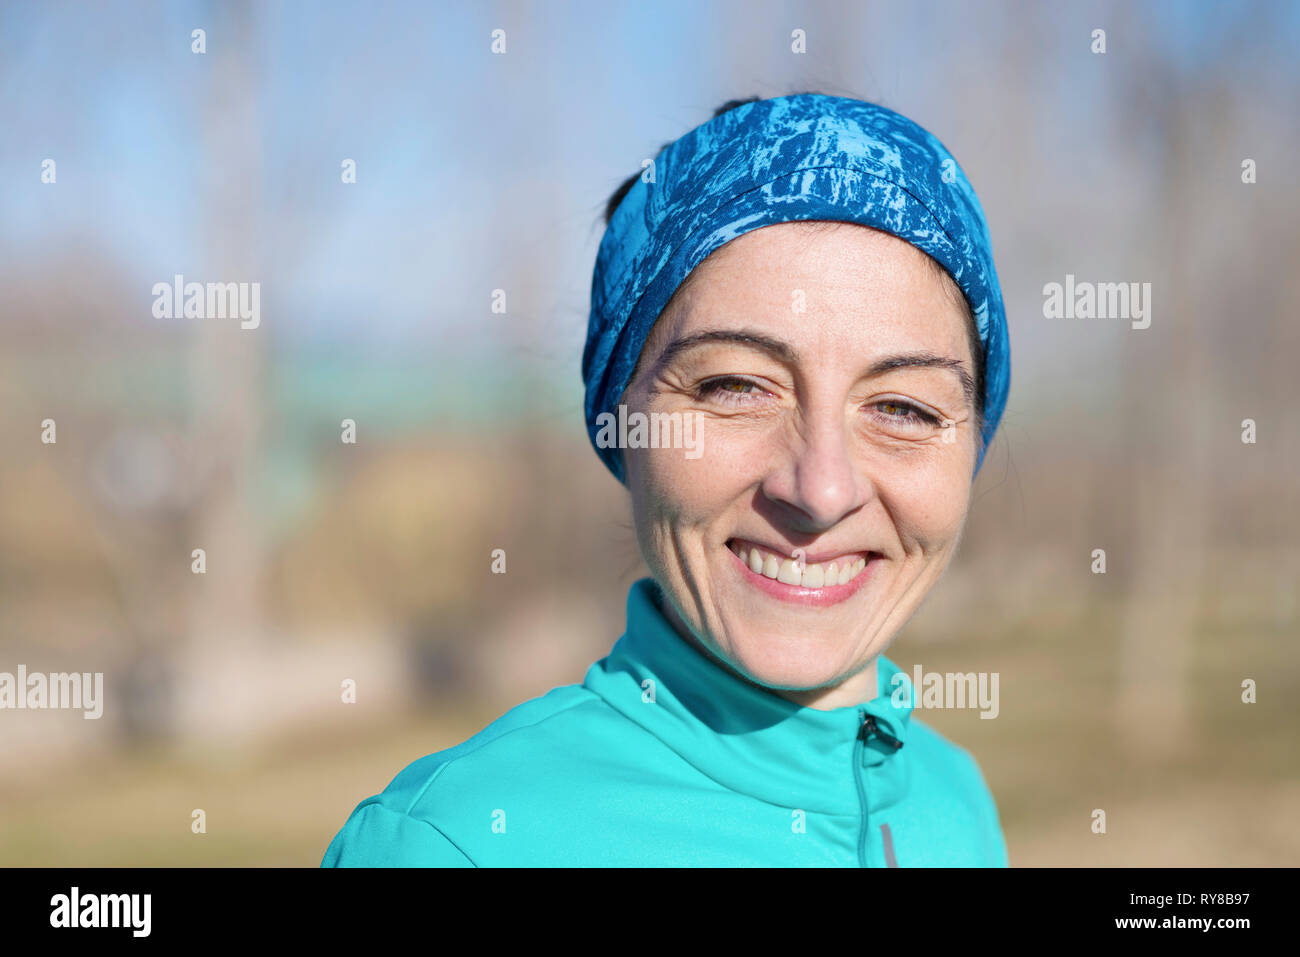 Close-up portrait of smiling female athlete standing in park during sunny day - Stock Image